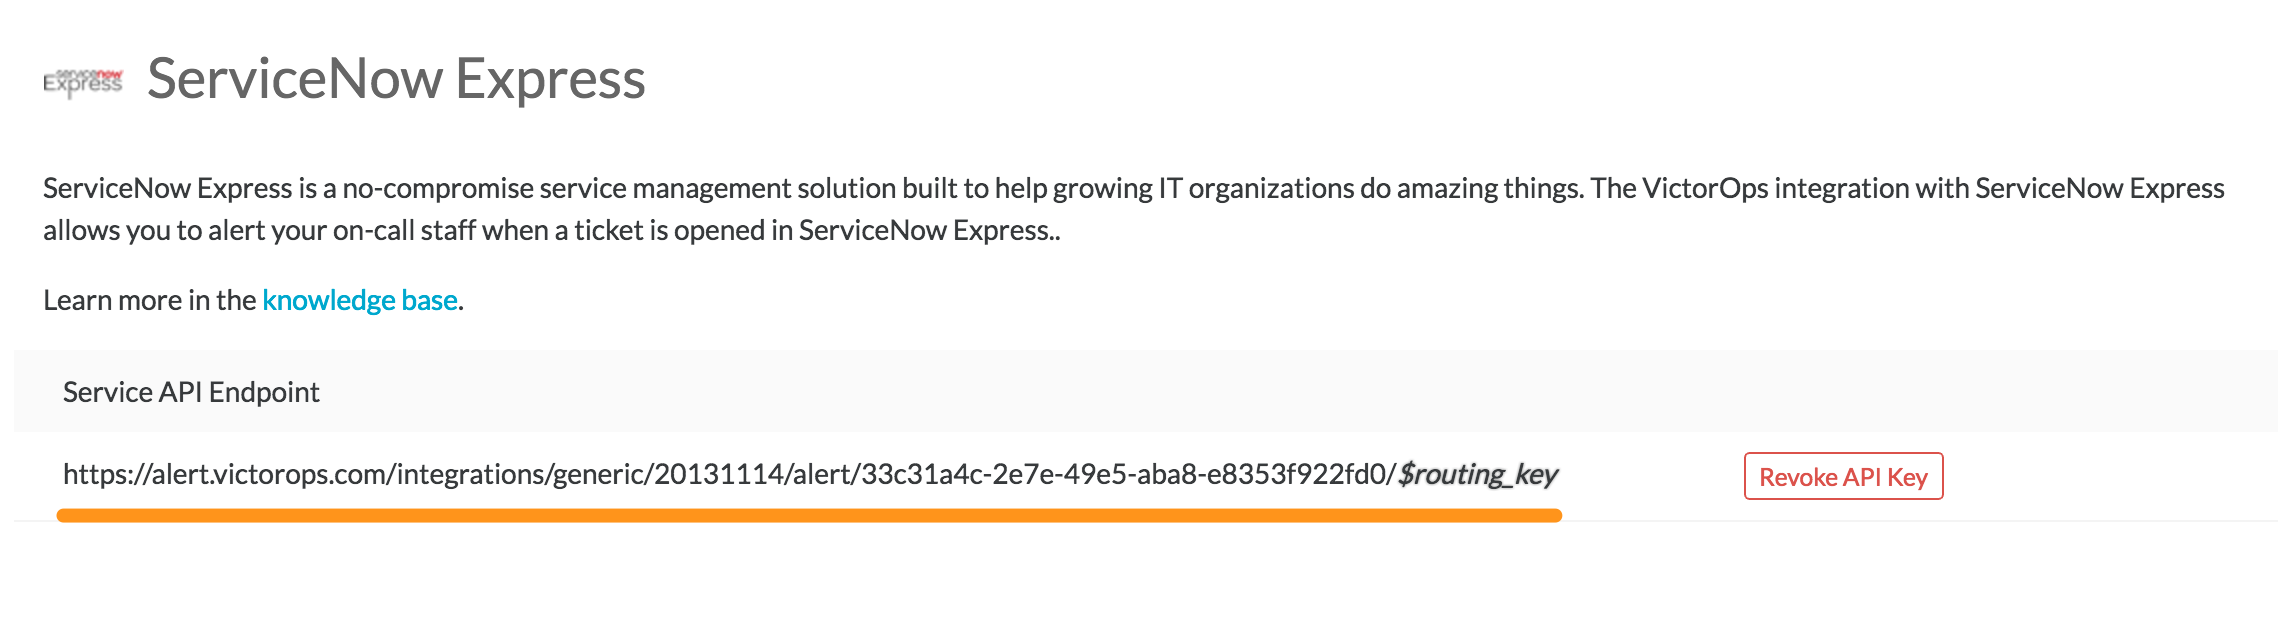 copy ServiceNow Express URL to clipboard